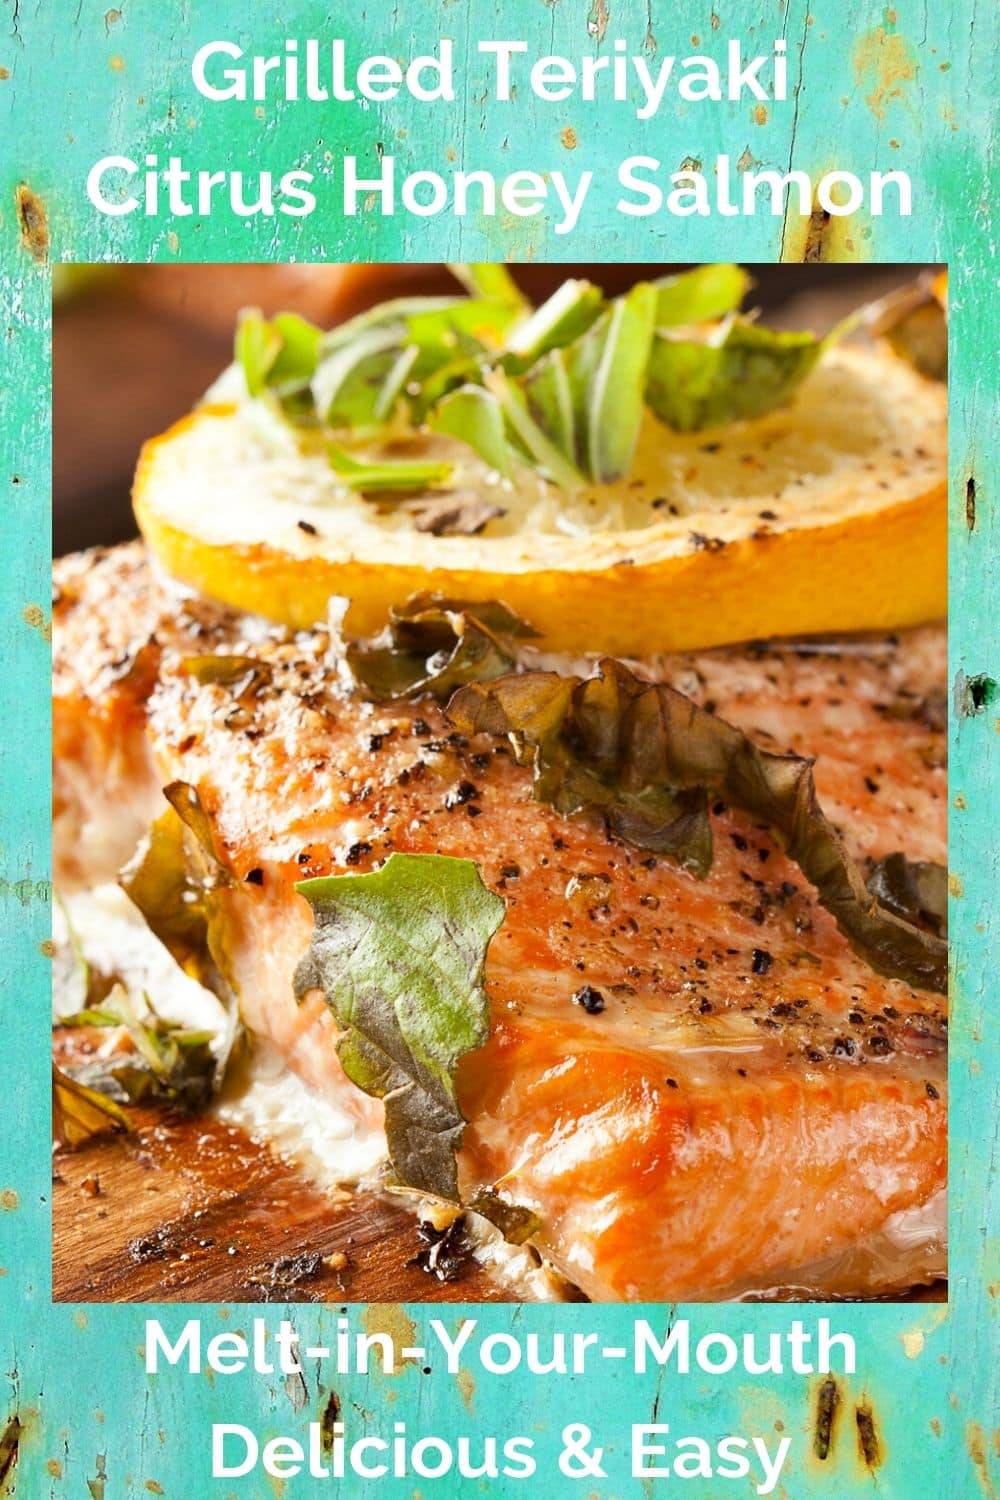 Love seafood but hate the prep? Easy and delicious grilled teriyaki citrus honey salmon to the rescue! With tasty flavors that don't overpower the delicate salmon this easy dish will become a favorite! Bonus? Quick & easy to make and clean up. #easymeals #seafood